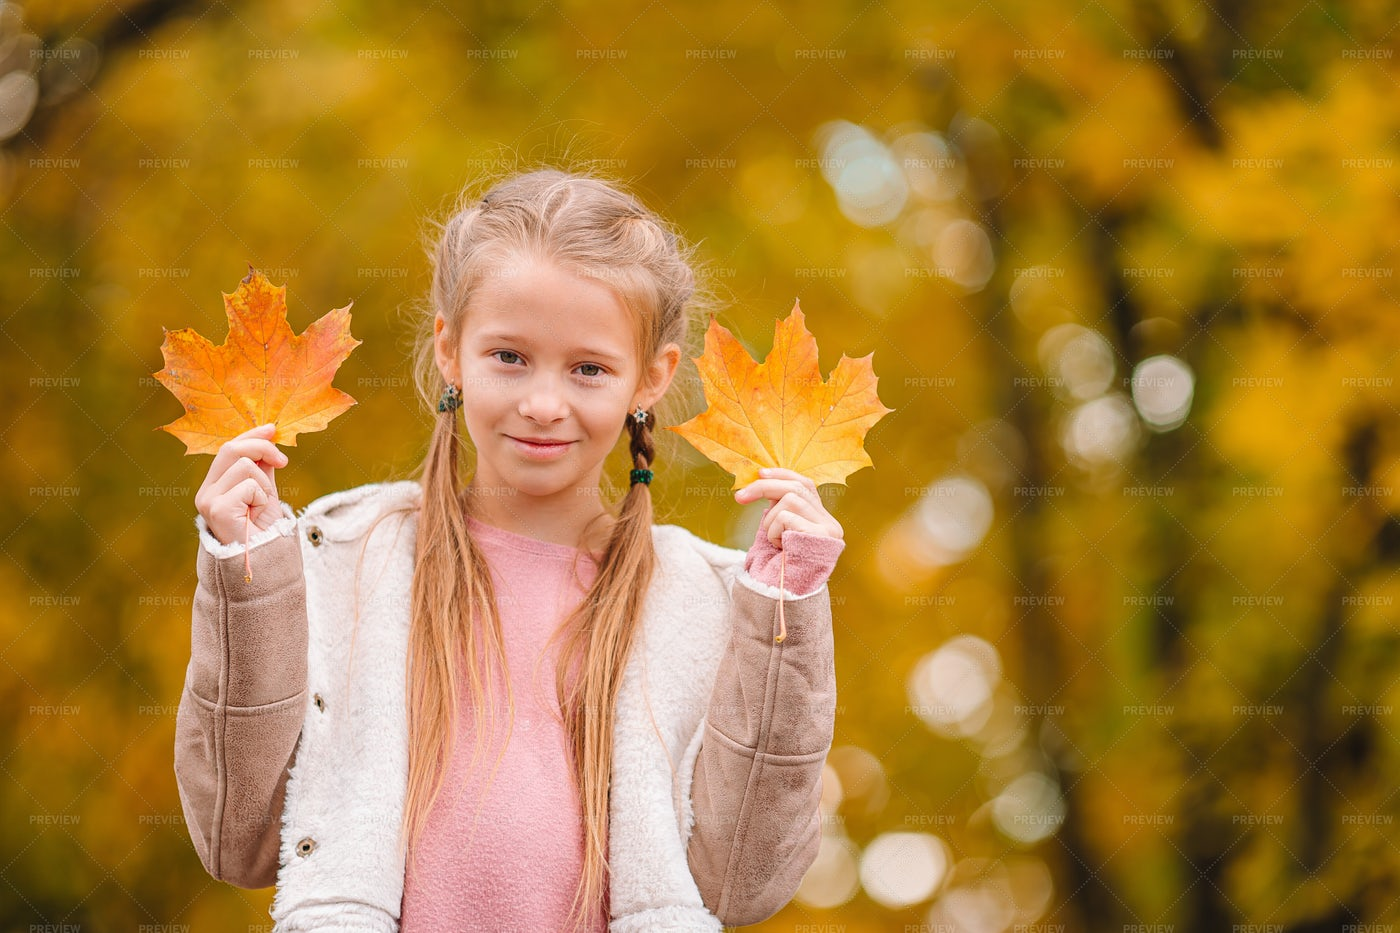 Little Girl At The Park In Fall: Stock Photos